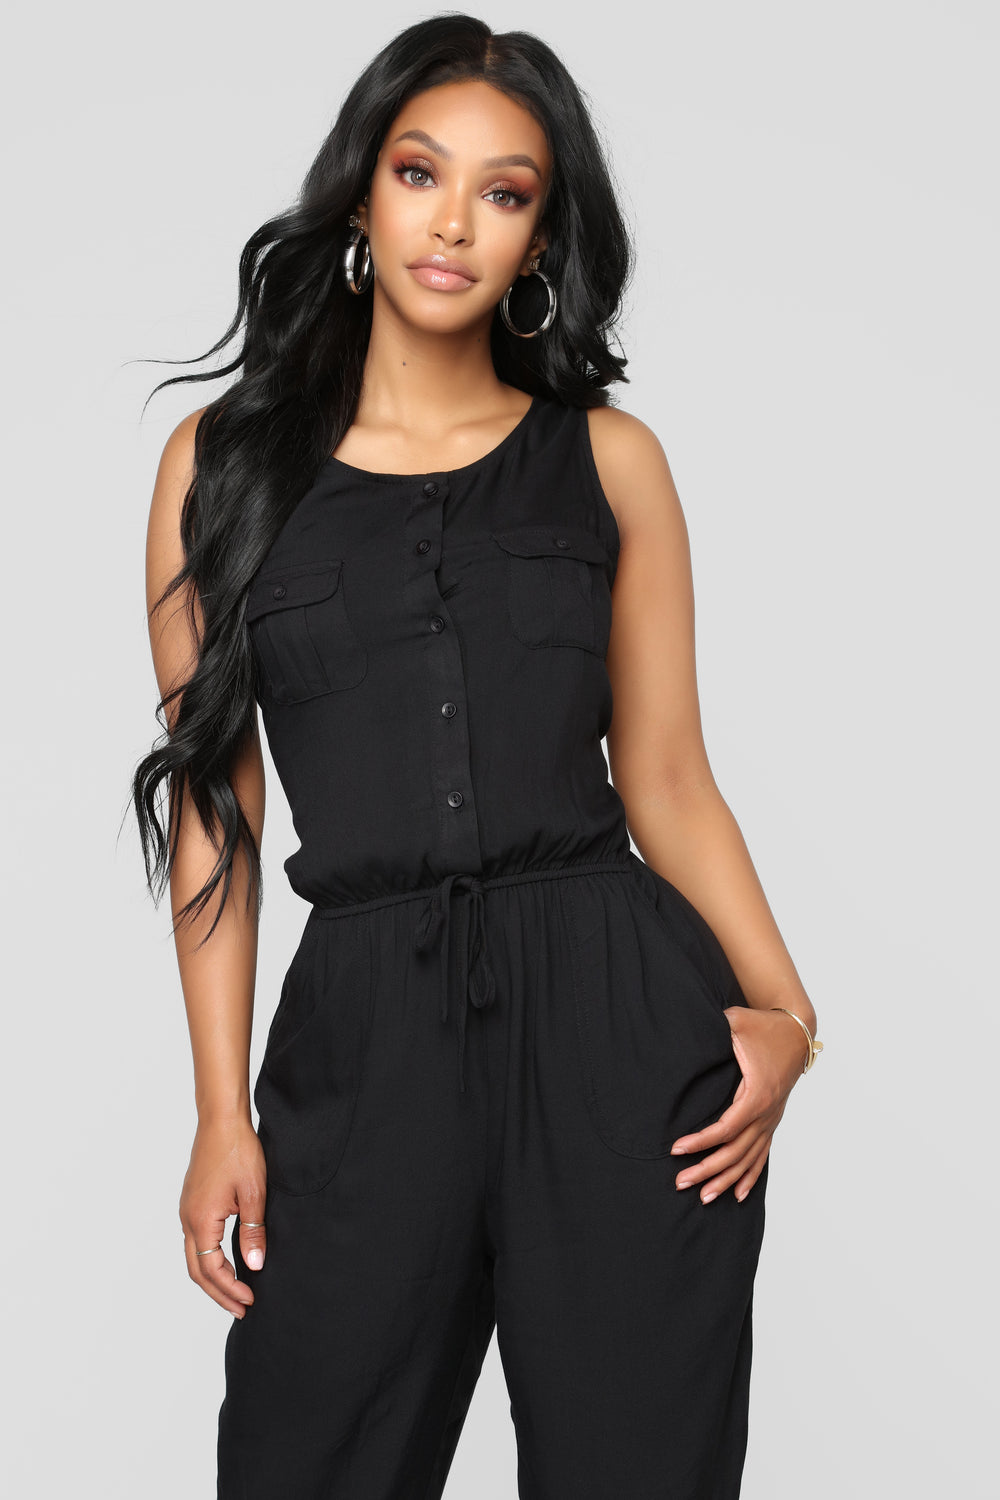 Rivalry Utility Jumpsuit - Black